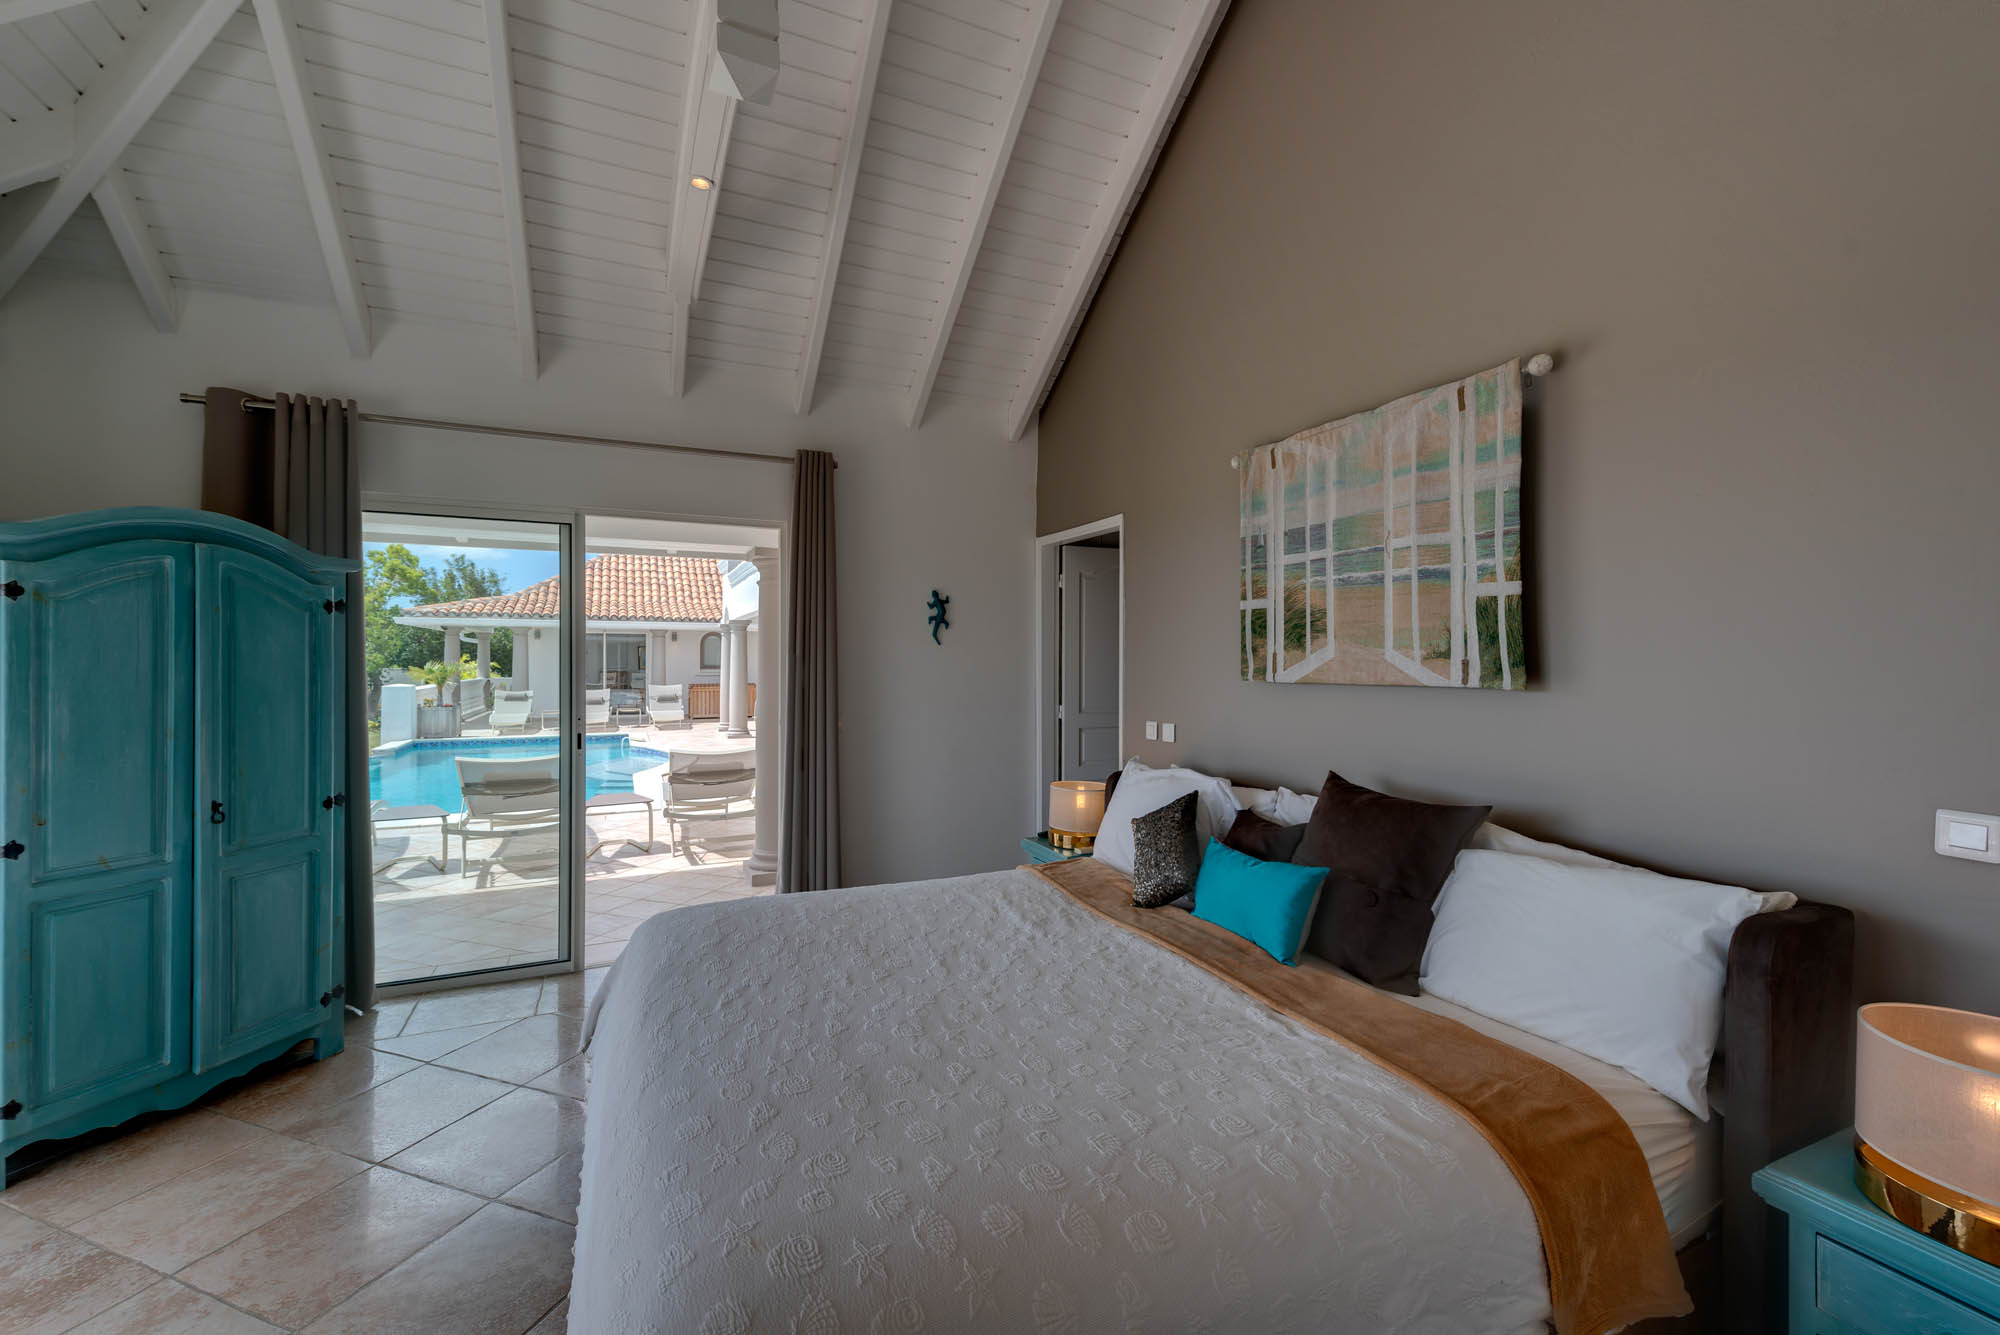 This Caribbean holiday villa has four bedroom with king-size beds and private bathrooms.